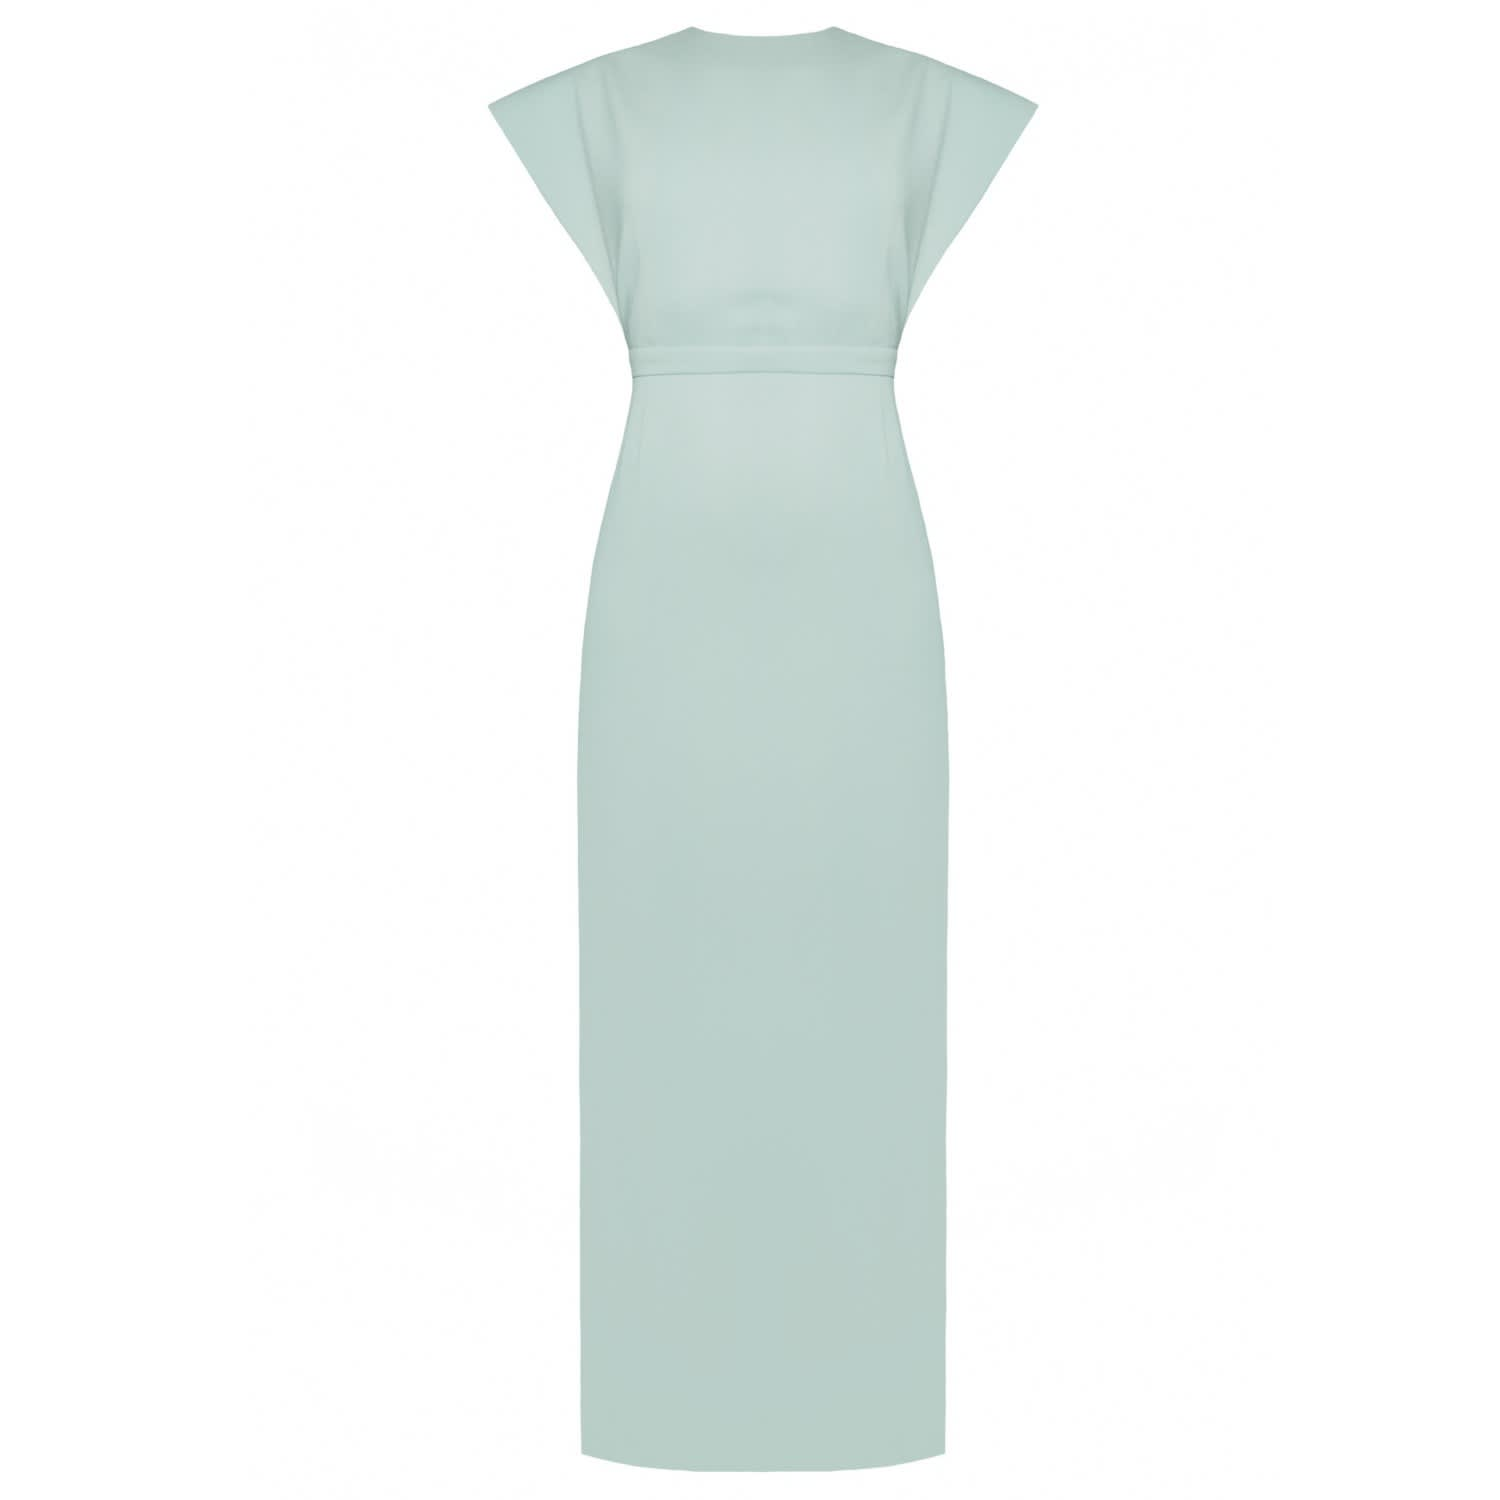 b3dffc0570 Mangata Mint Green Open Back Maxi Occasion Wedding Guest Dress ...